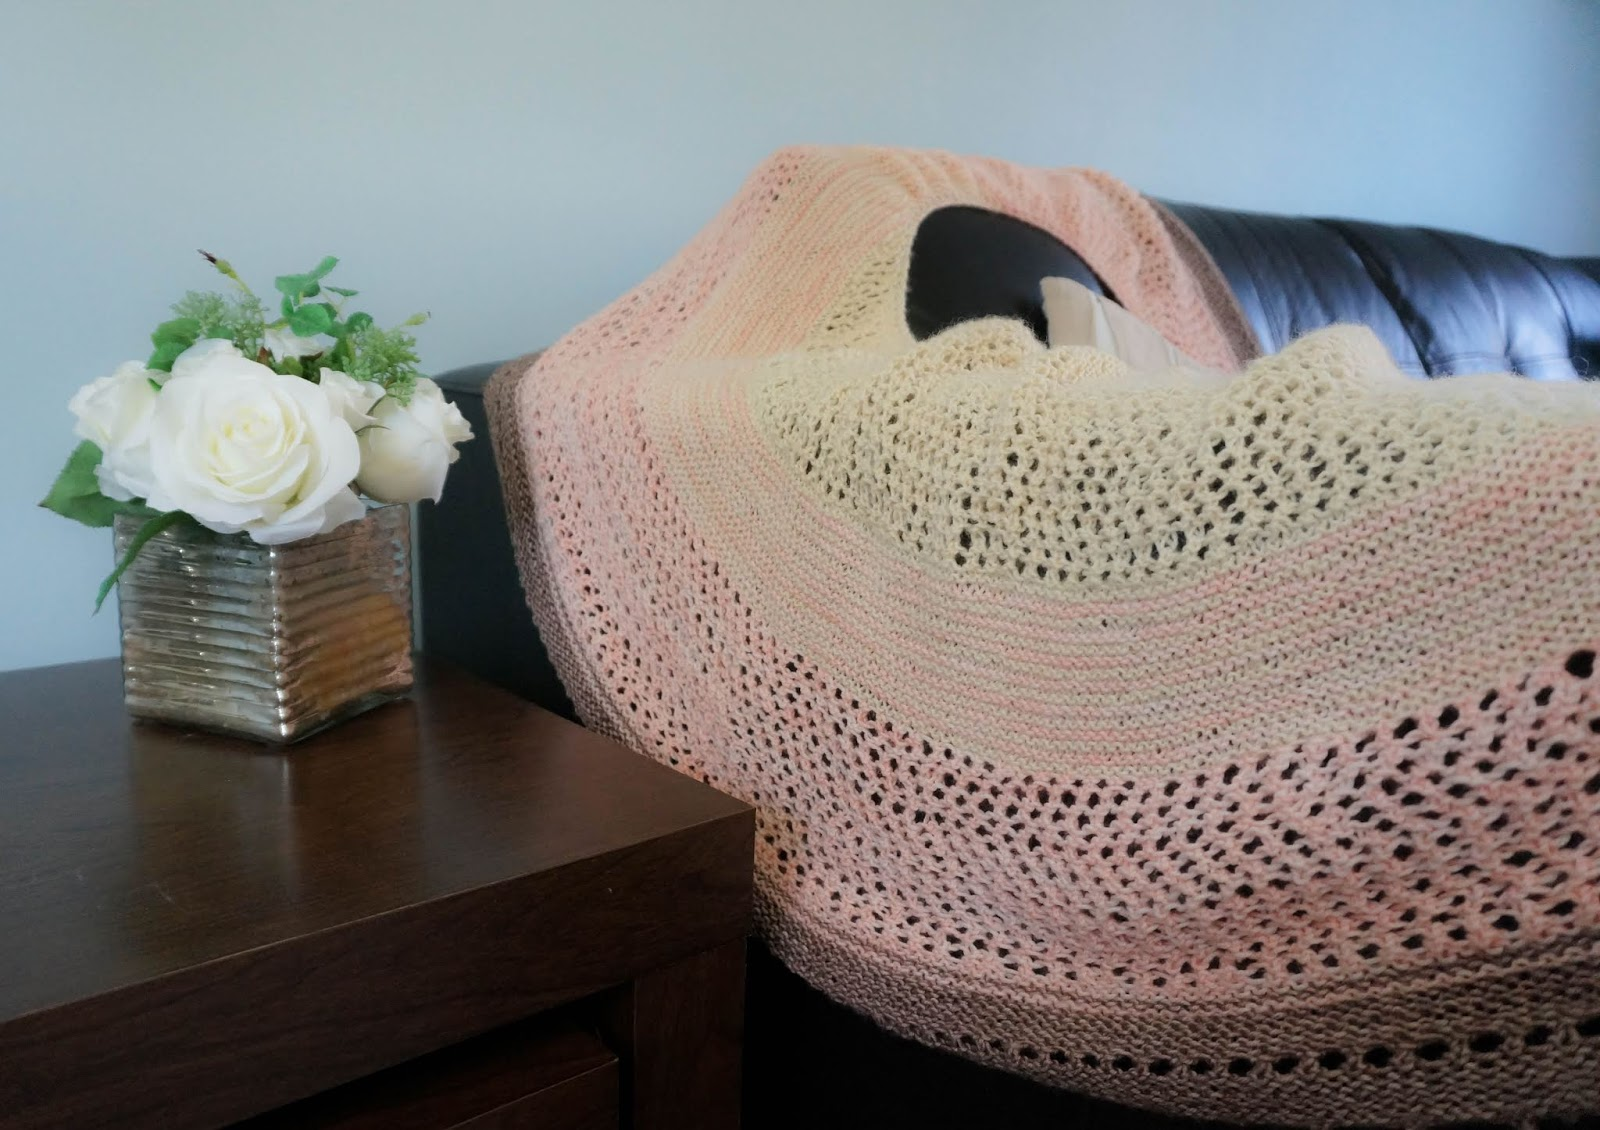 Joji Locatelli Jujuy shawl in Eden Cottage Yarns